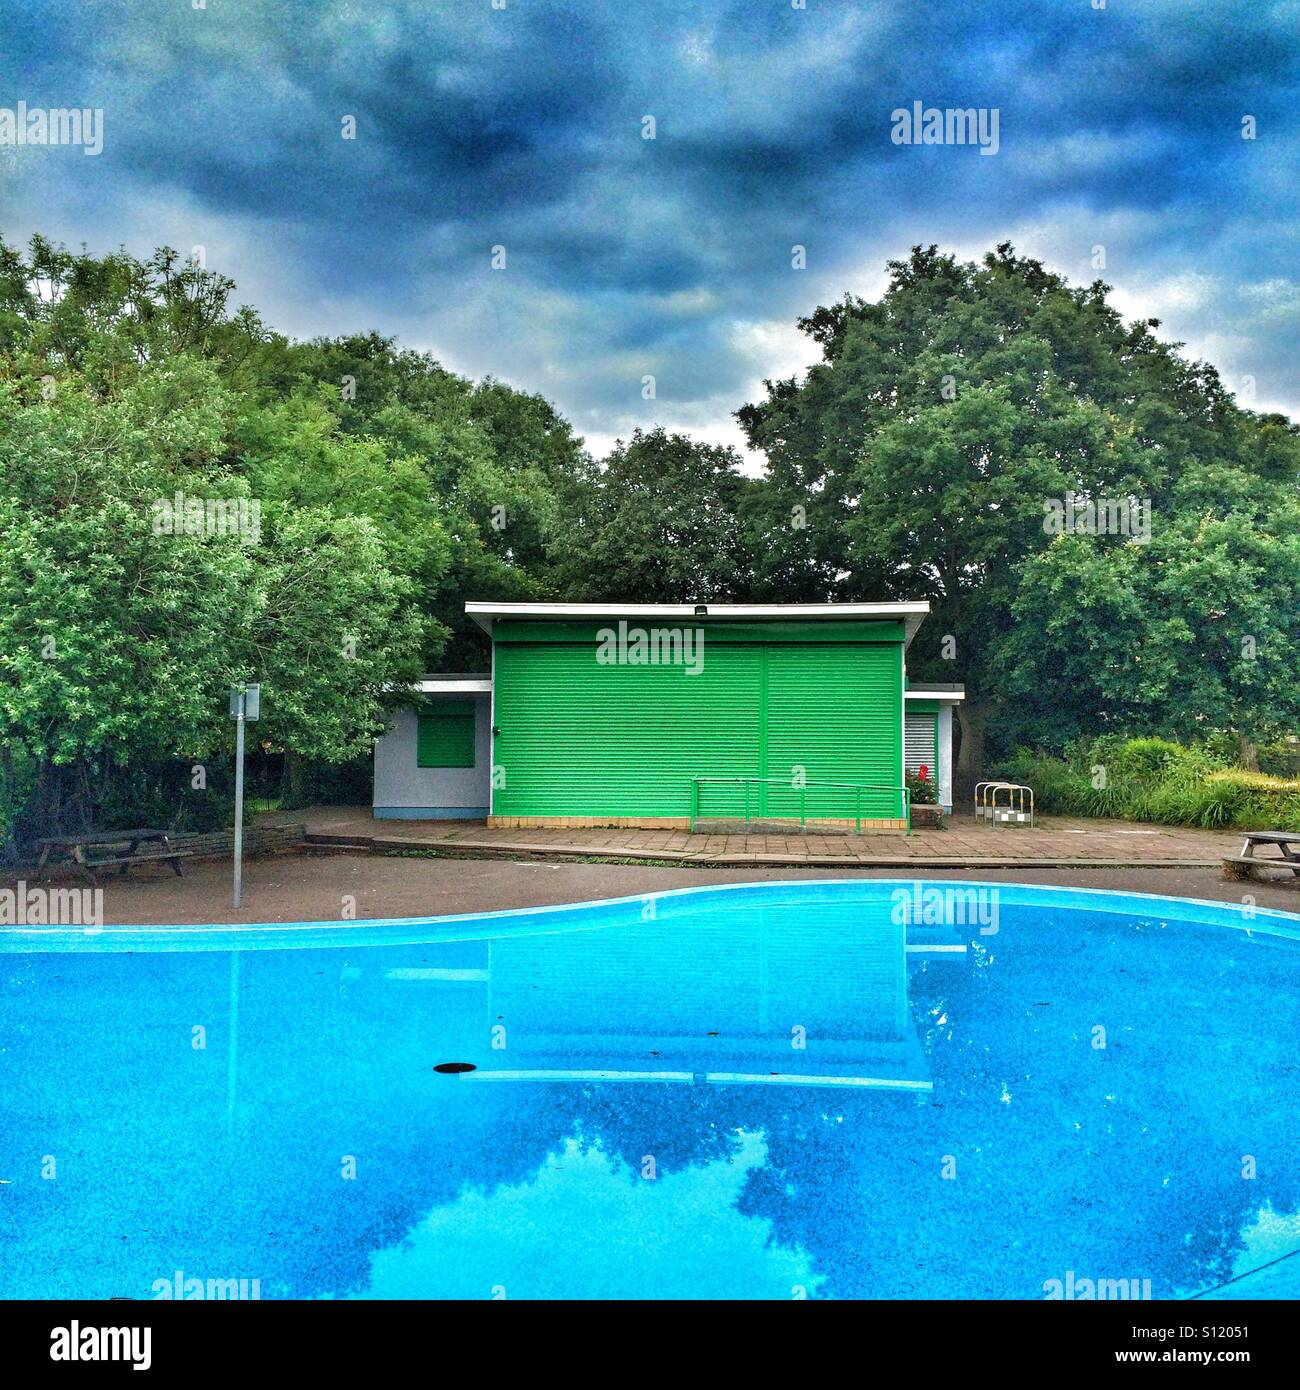 A green building by a blue paddling pool - Stock Image